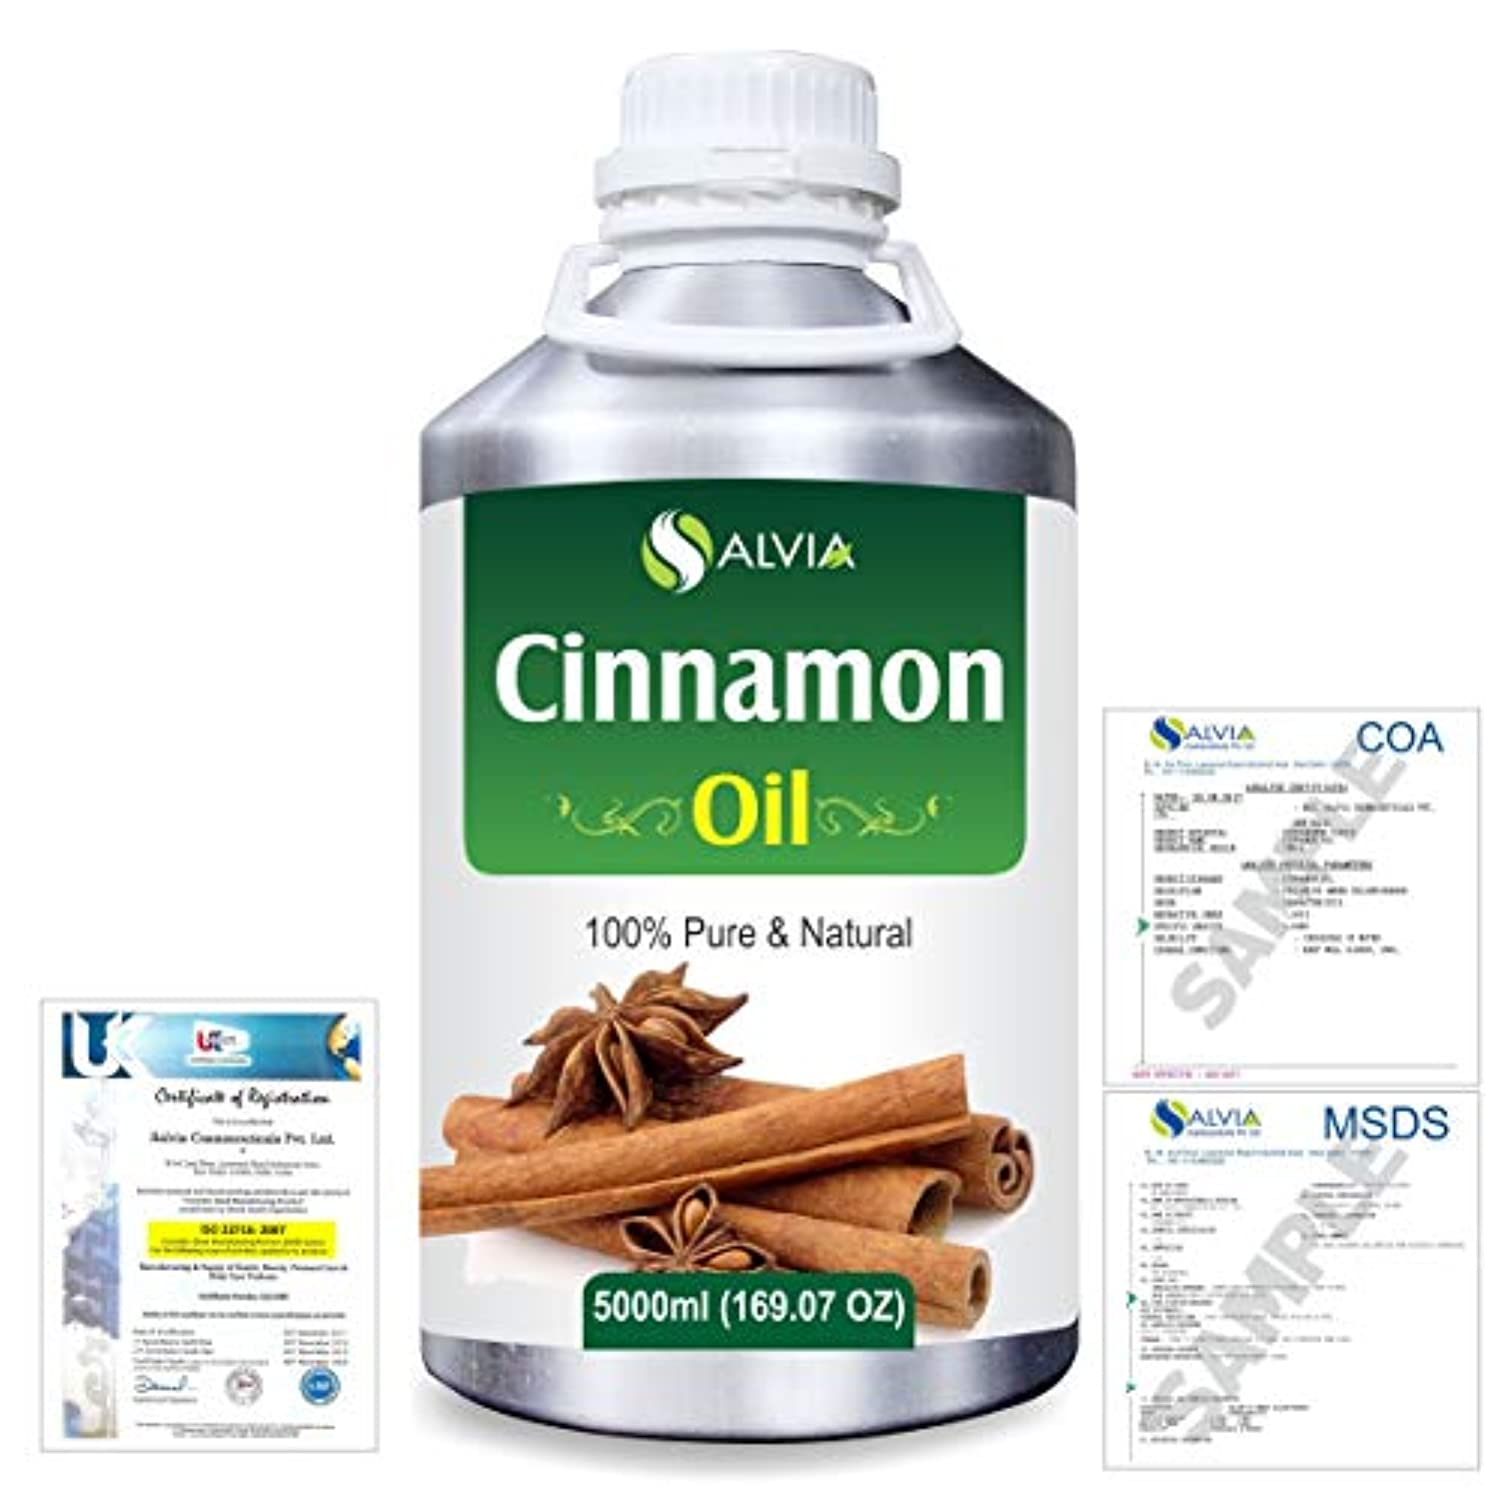 メアリアンジョーンズ不格好傾斜Cinnamon (Cinnamomum Cassia) 100% Natural Pure Essential Oil 5000ml/169fl.oz.